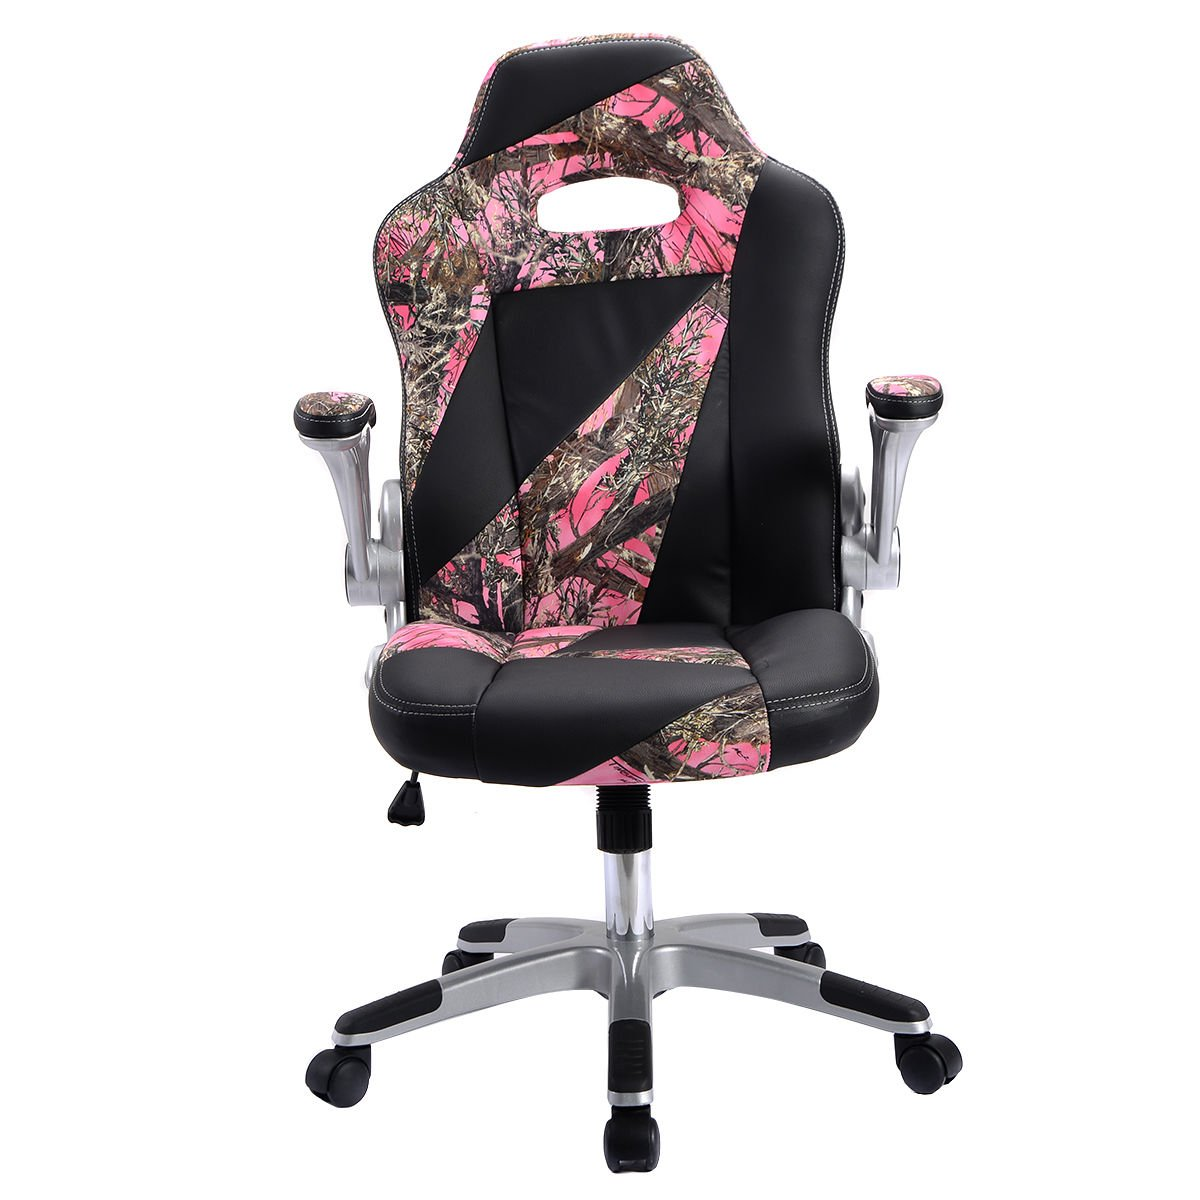 most design chair chairs computer desk cool office reception good armless peerless ergonomic